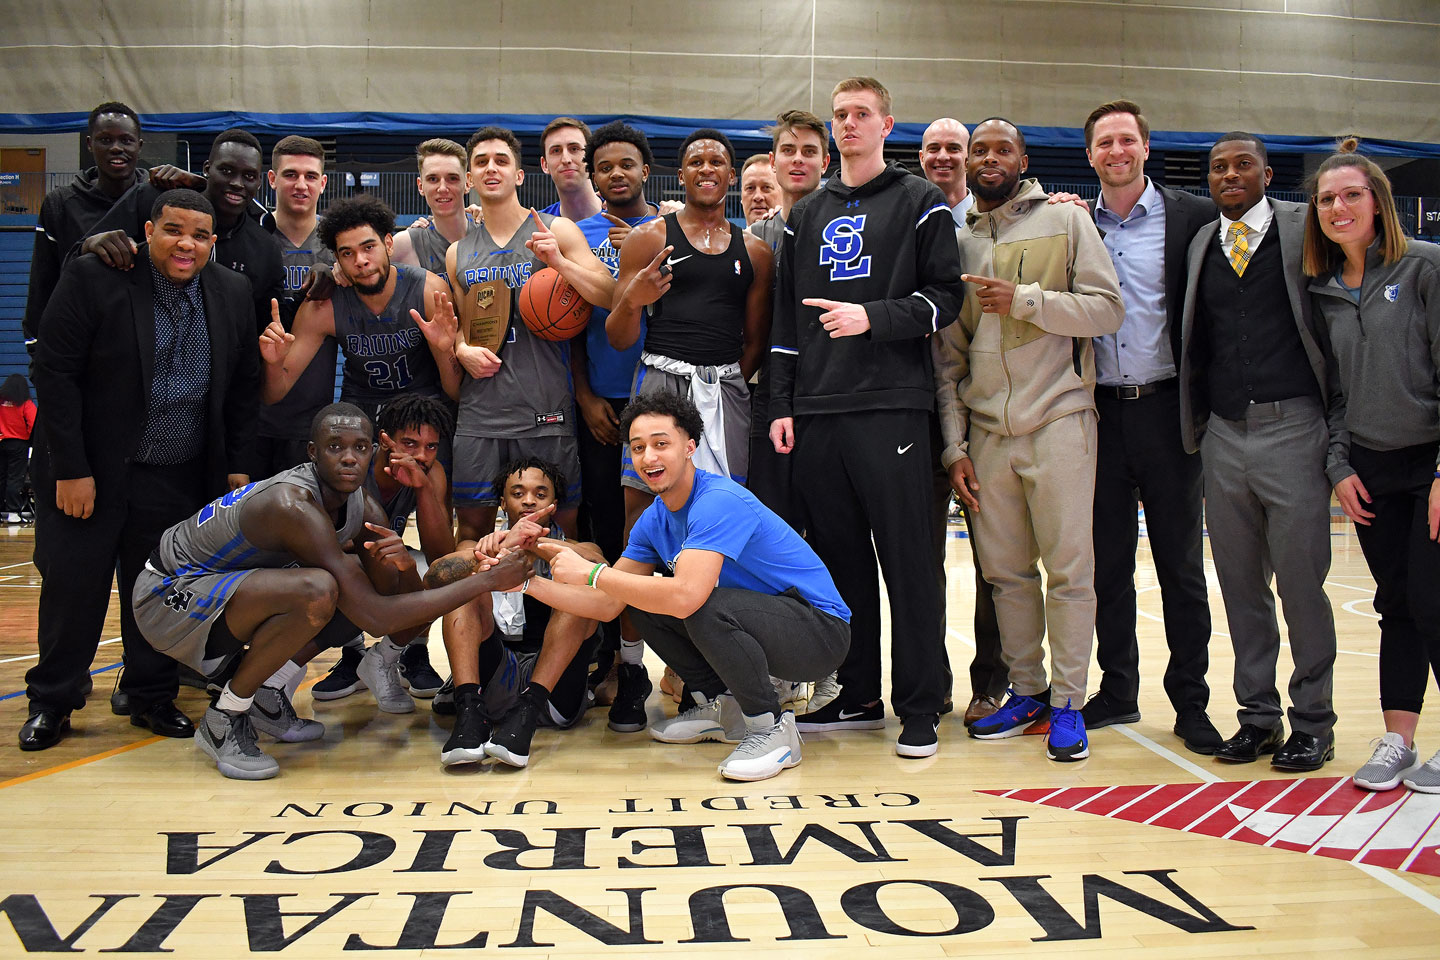 Men's basketball team with championship plaque